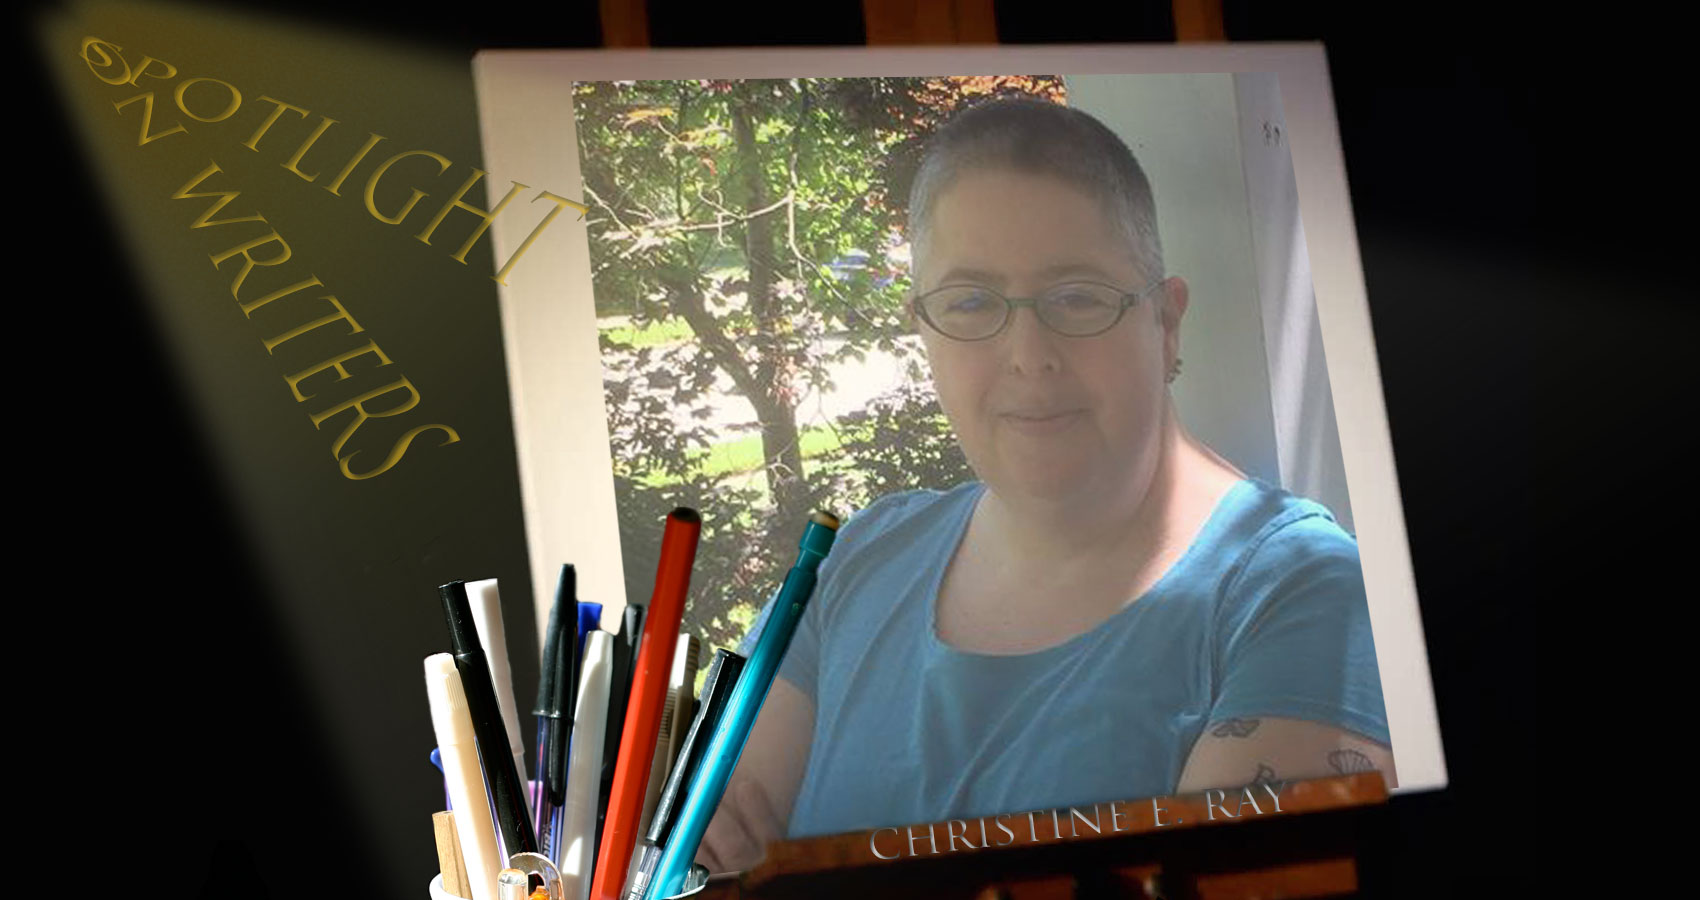 Spotlight On Writers - Christine E. Ray at Spillwords.com